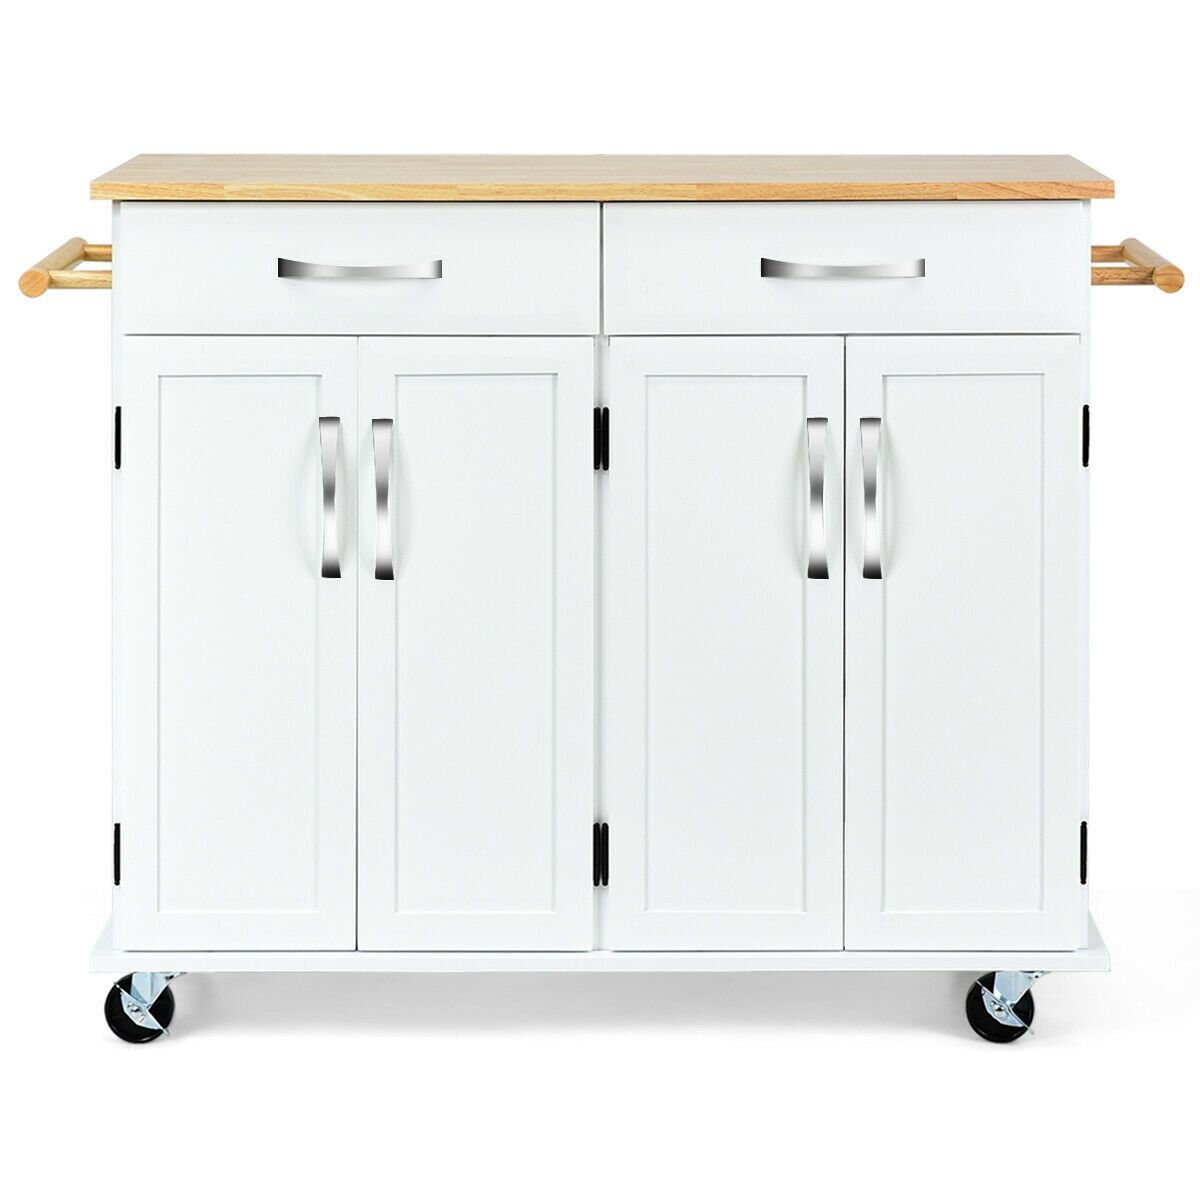 Wood Top Rolling Kitchen Trolley Island Cart Storage Cabinet In 2020 Cabinet Kitchen Trolley Moveable Kitchen Island